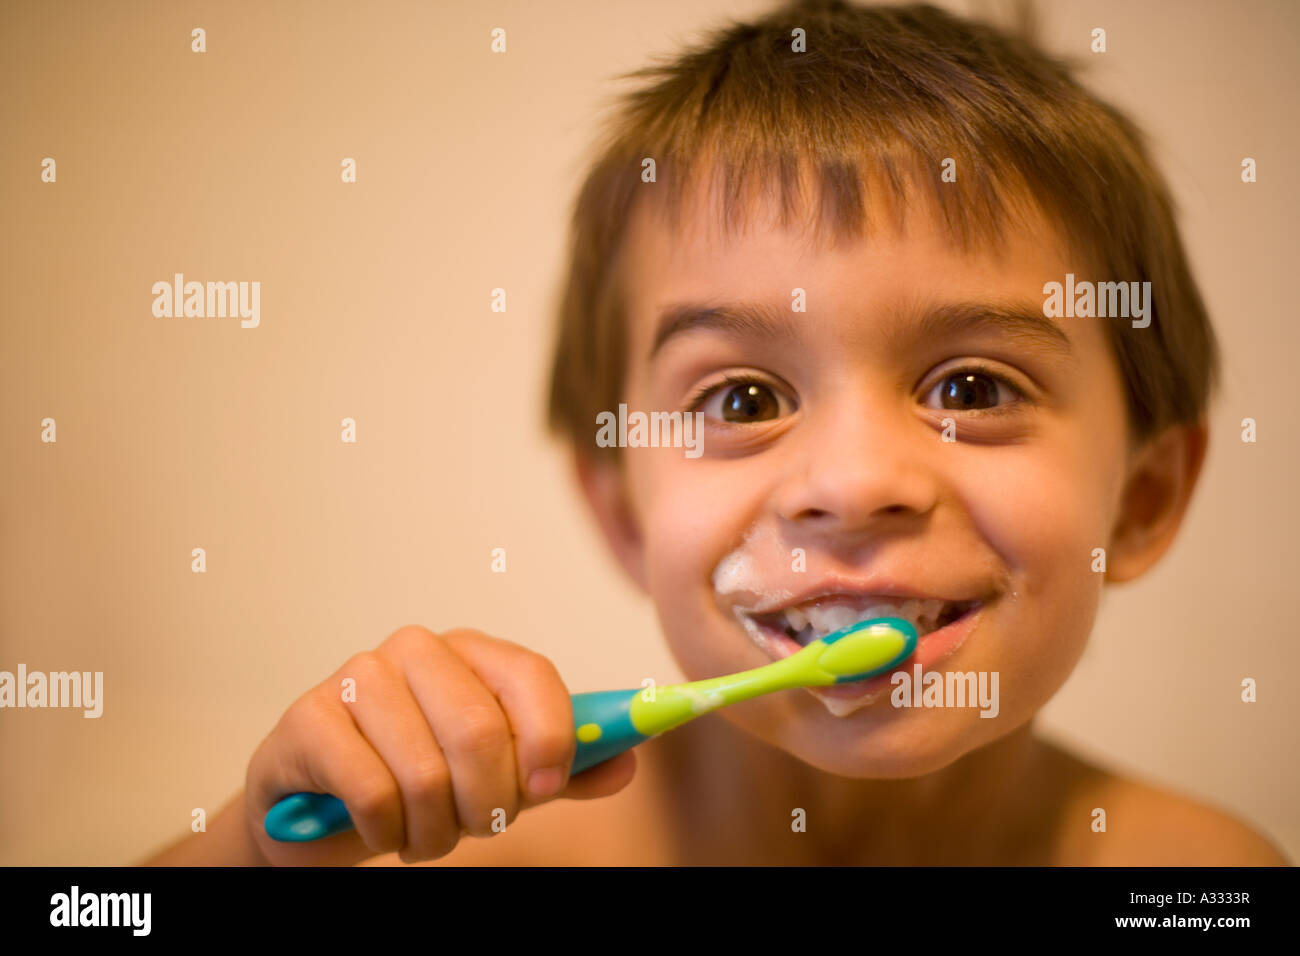 Little boy brushes his teeth. PR for house and home. - Stock Image